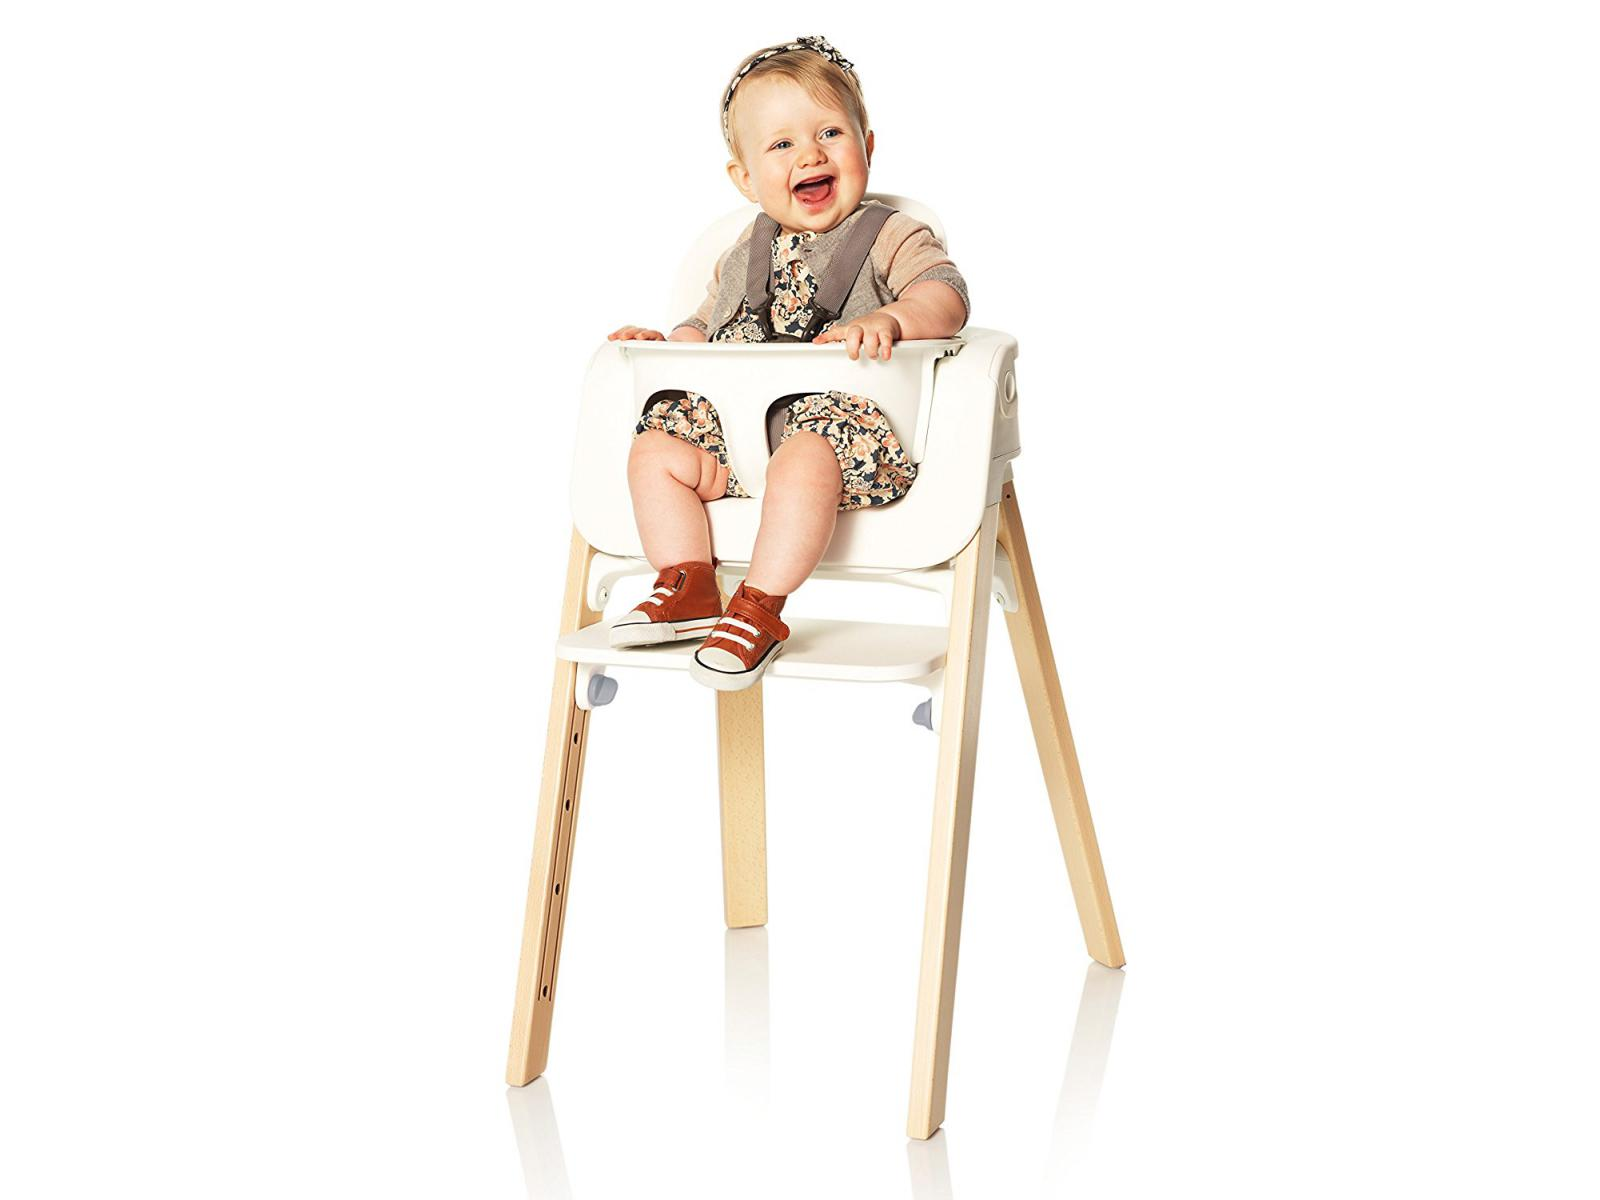 Chaise Pour Haute Omnw8vn0 Stokke Blanc Set Baby Steps 0OX8nwPk